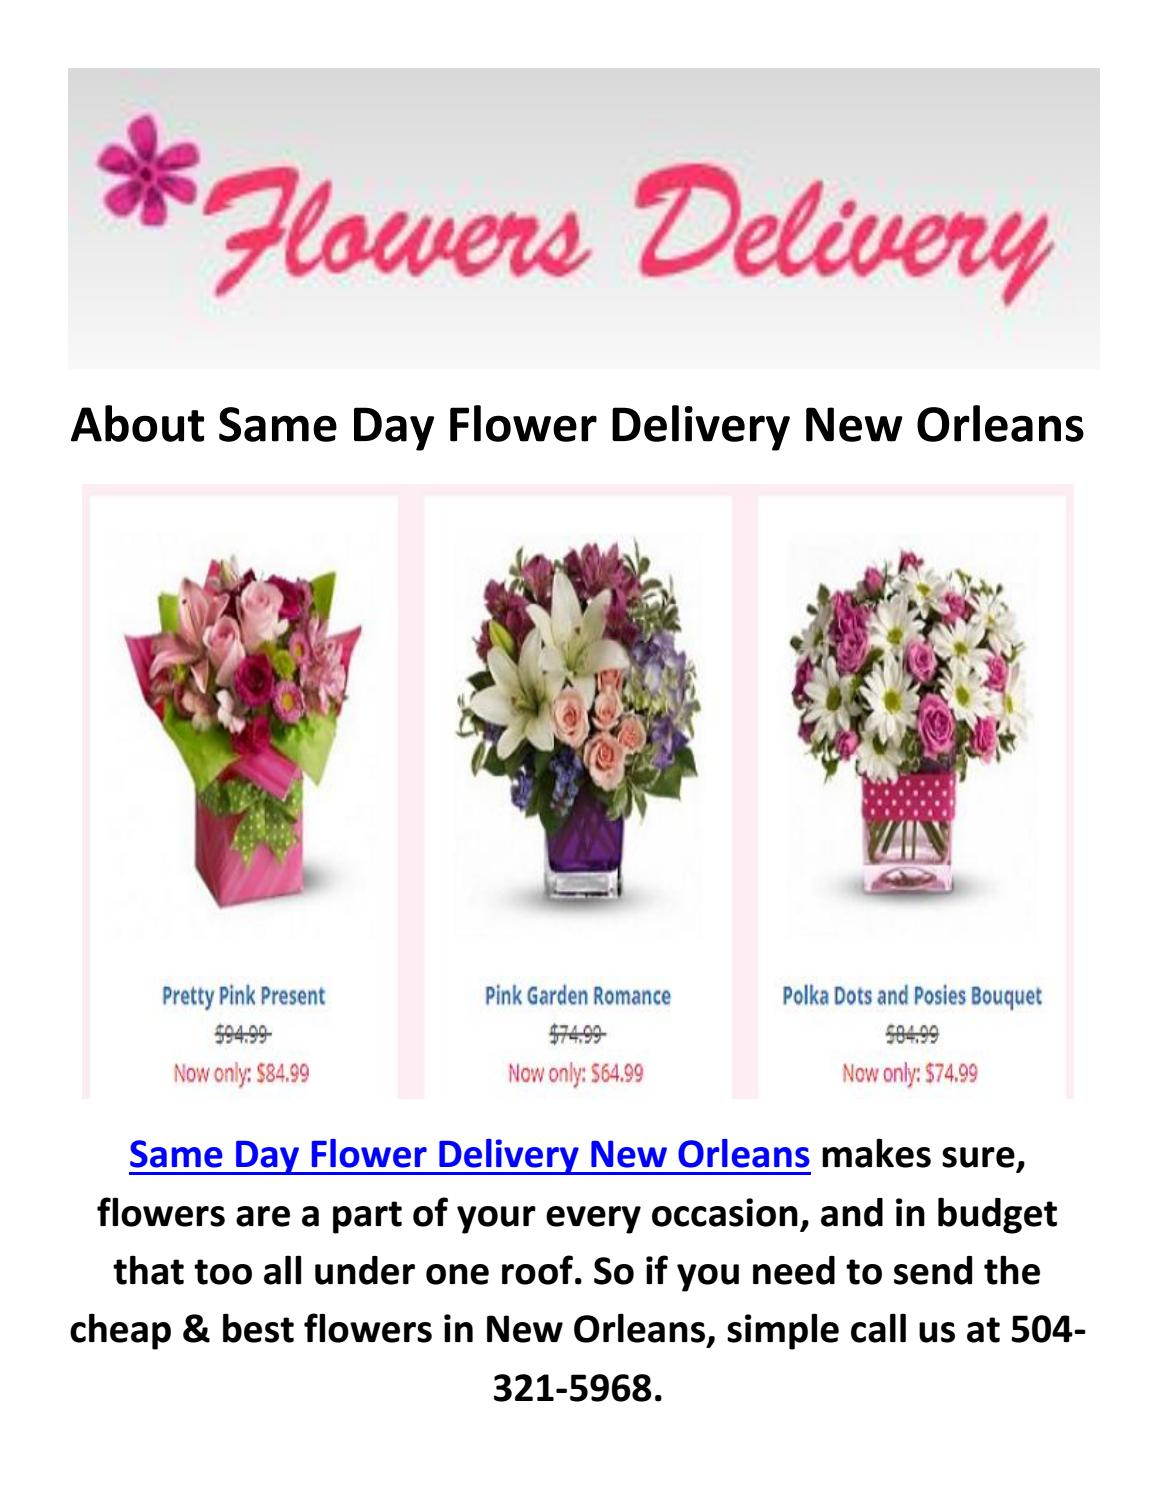 Affordable flower delivery in new orleans la 504 321 5968 by same affordable flower delivery in new orleans la 504 321 5968 by same day flower delivery new orleans issuu izmirmasajfo